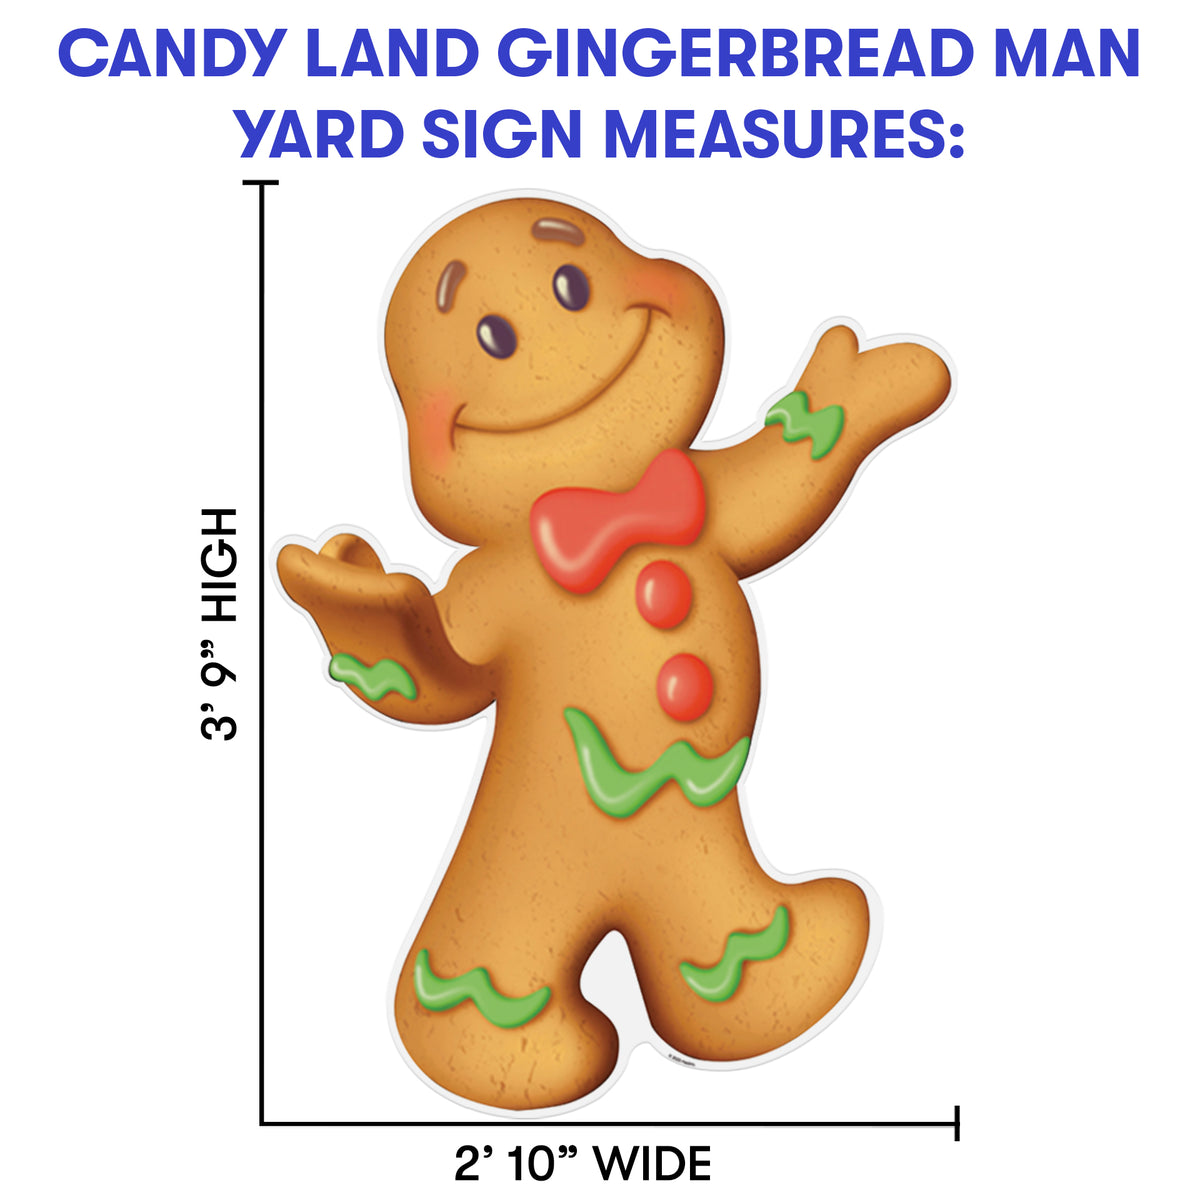 3 ft. 9 in. Candy Land Gingerbread Man Yard Sign